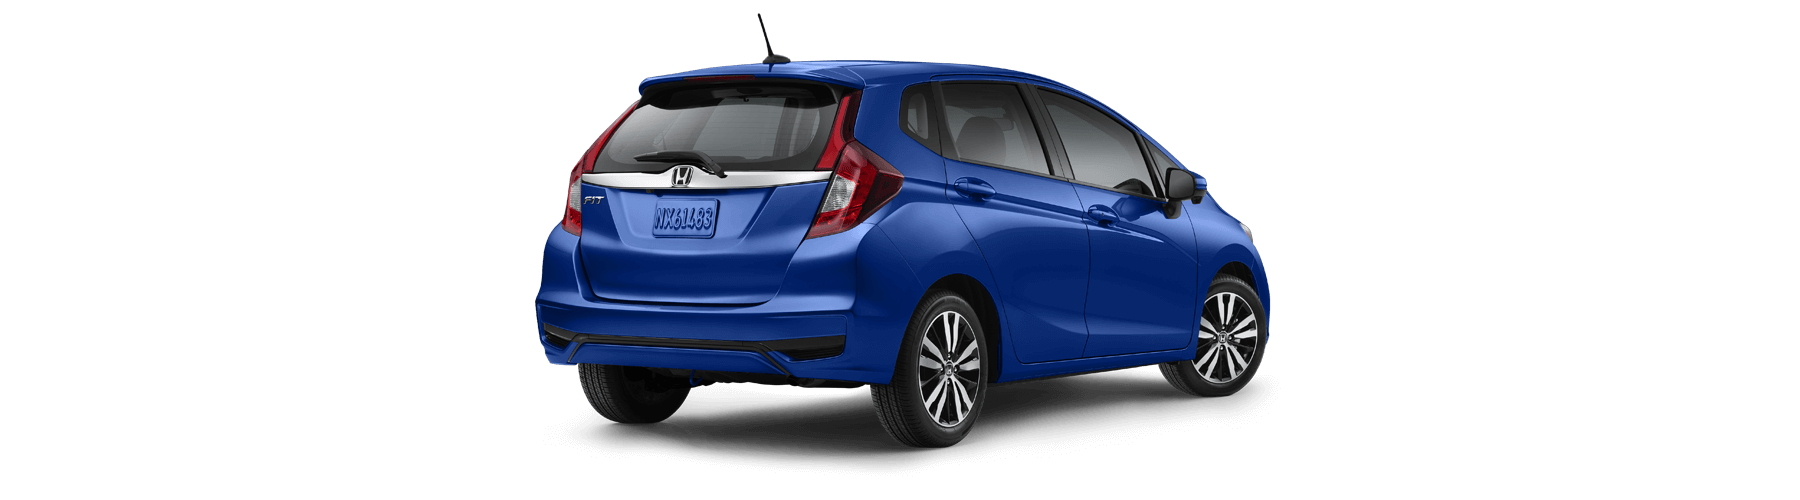 2018 Honda Fit Rear Angle